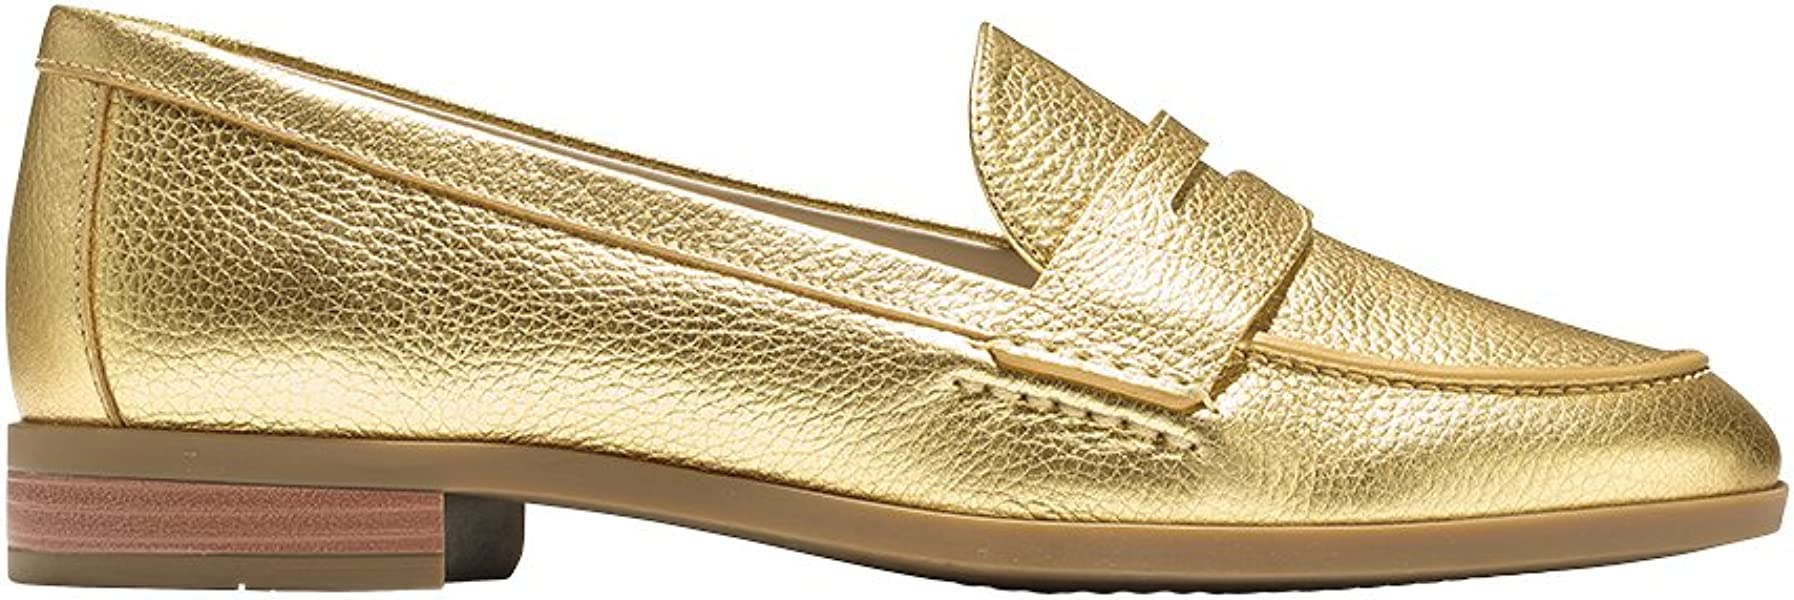 57922cb8f704 Cole Haan Women s Pinch Grand Penny Loafer 7.5 Gold Metallic Shoes Fall